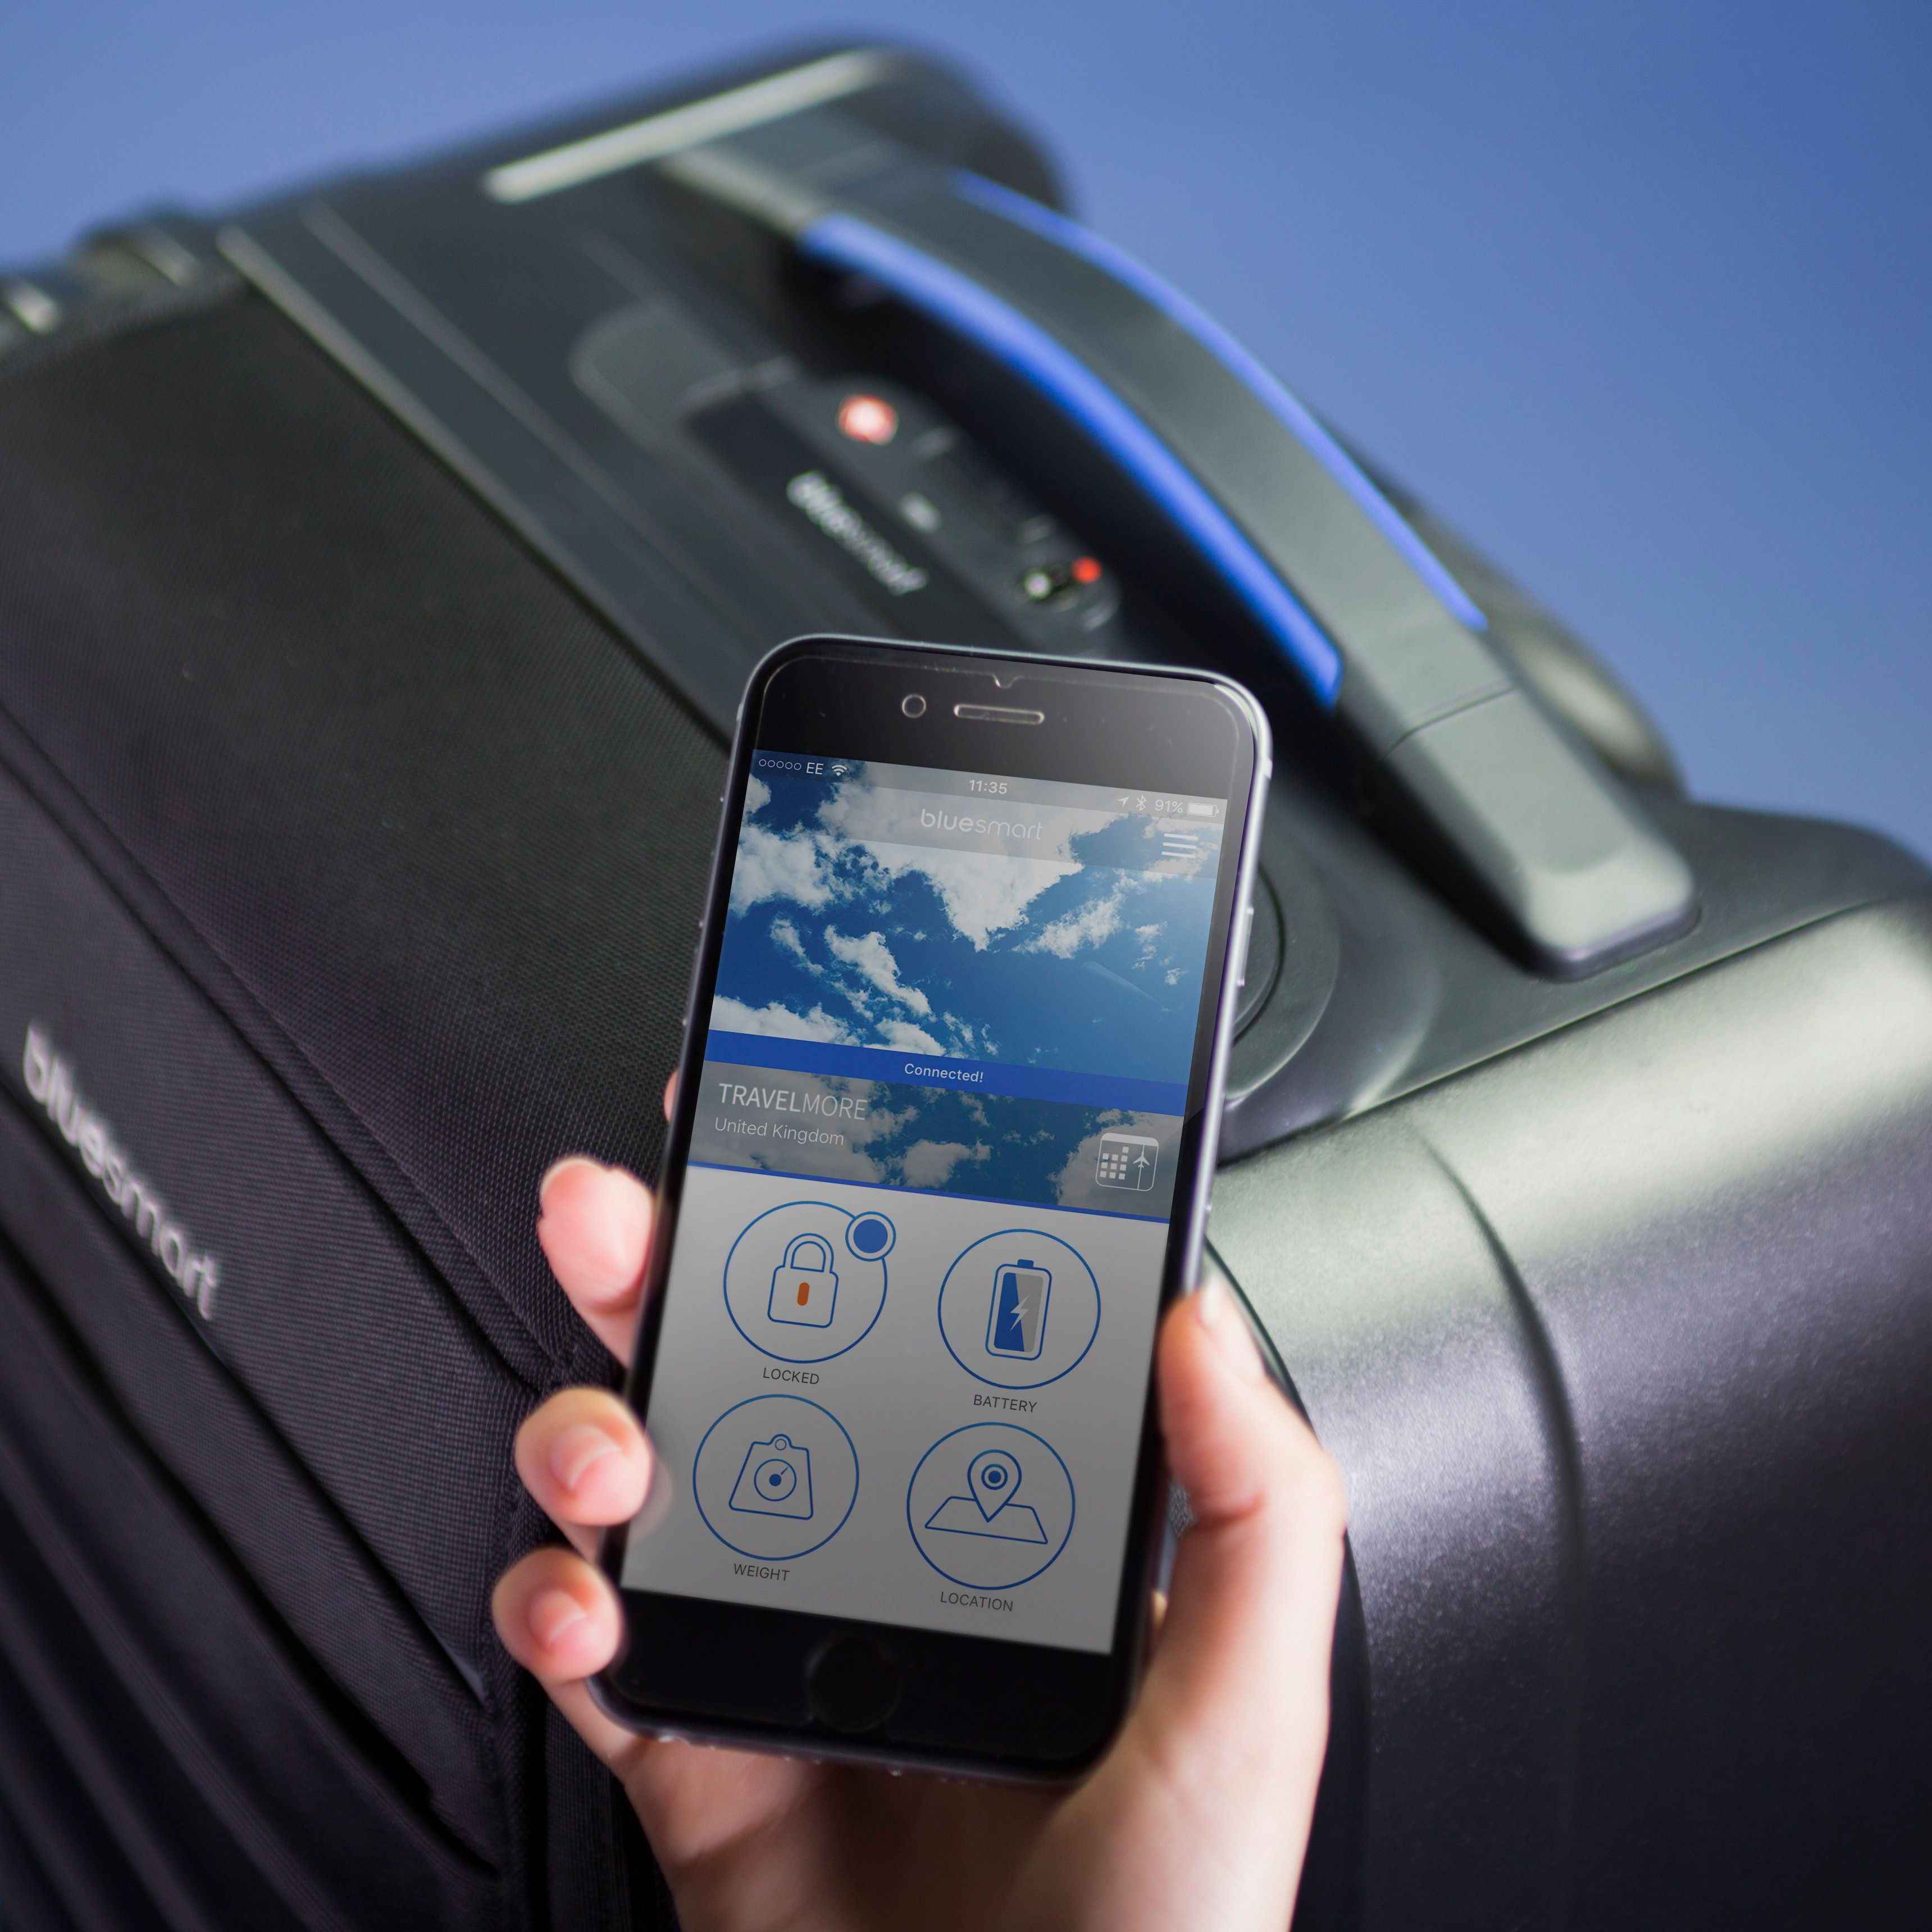 This Bluesmart 'Smart' Suitcase Takes All The Stress Out Of